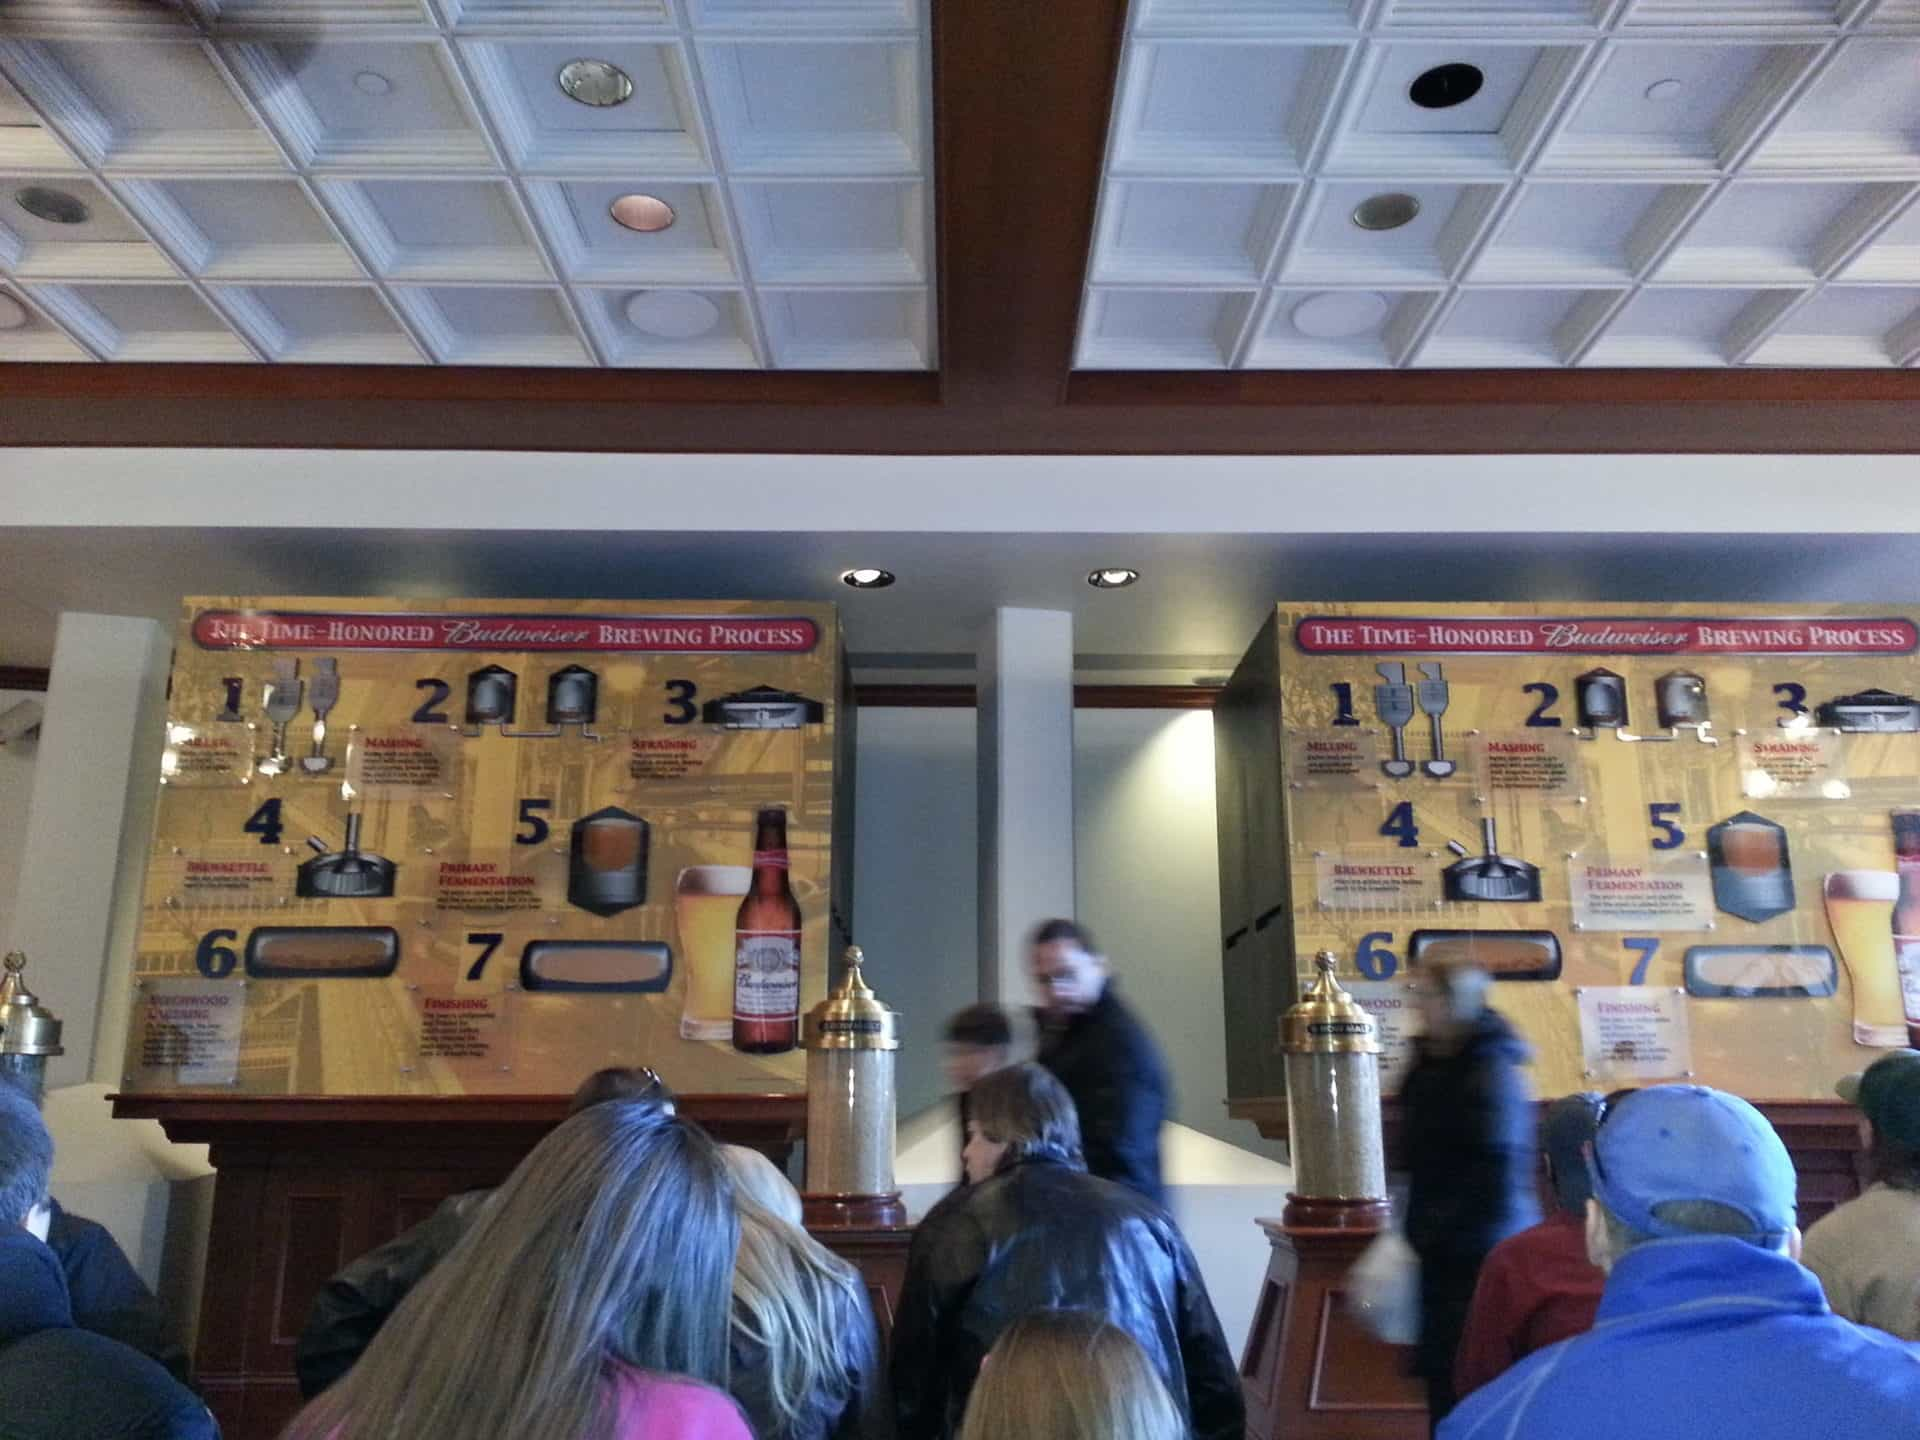 Budweiser Brewery Tour, St. Louis, MO - Tasting Room